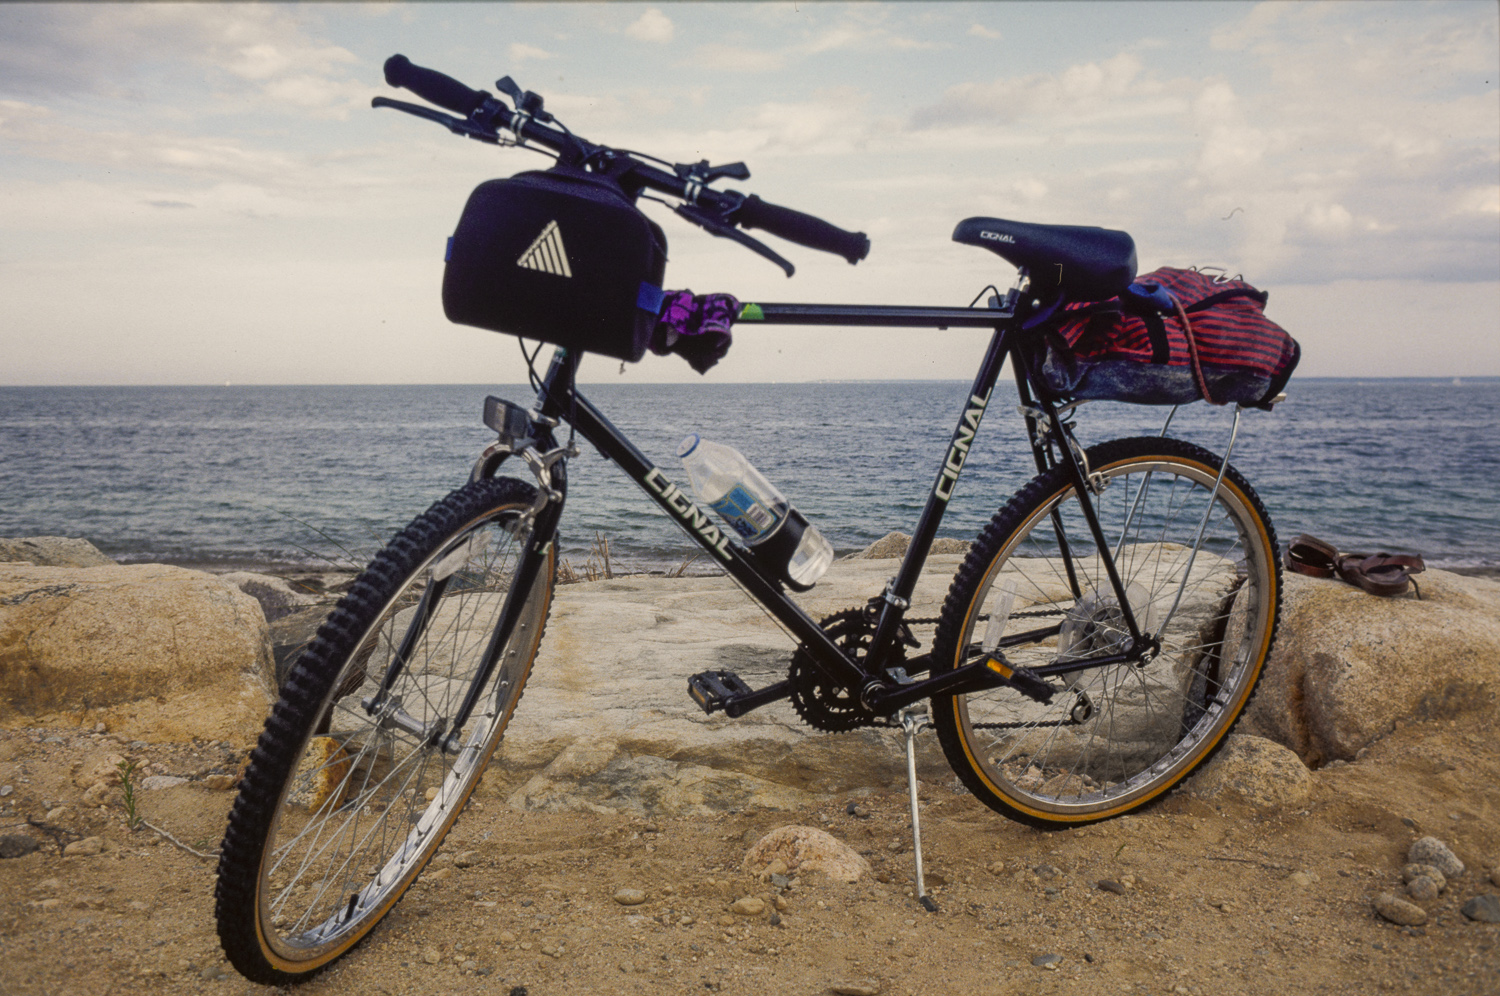 Bicycle - Cape Cod, 1992